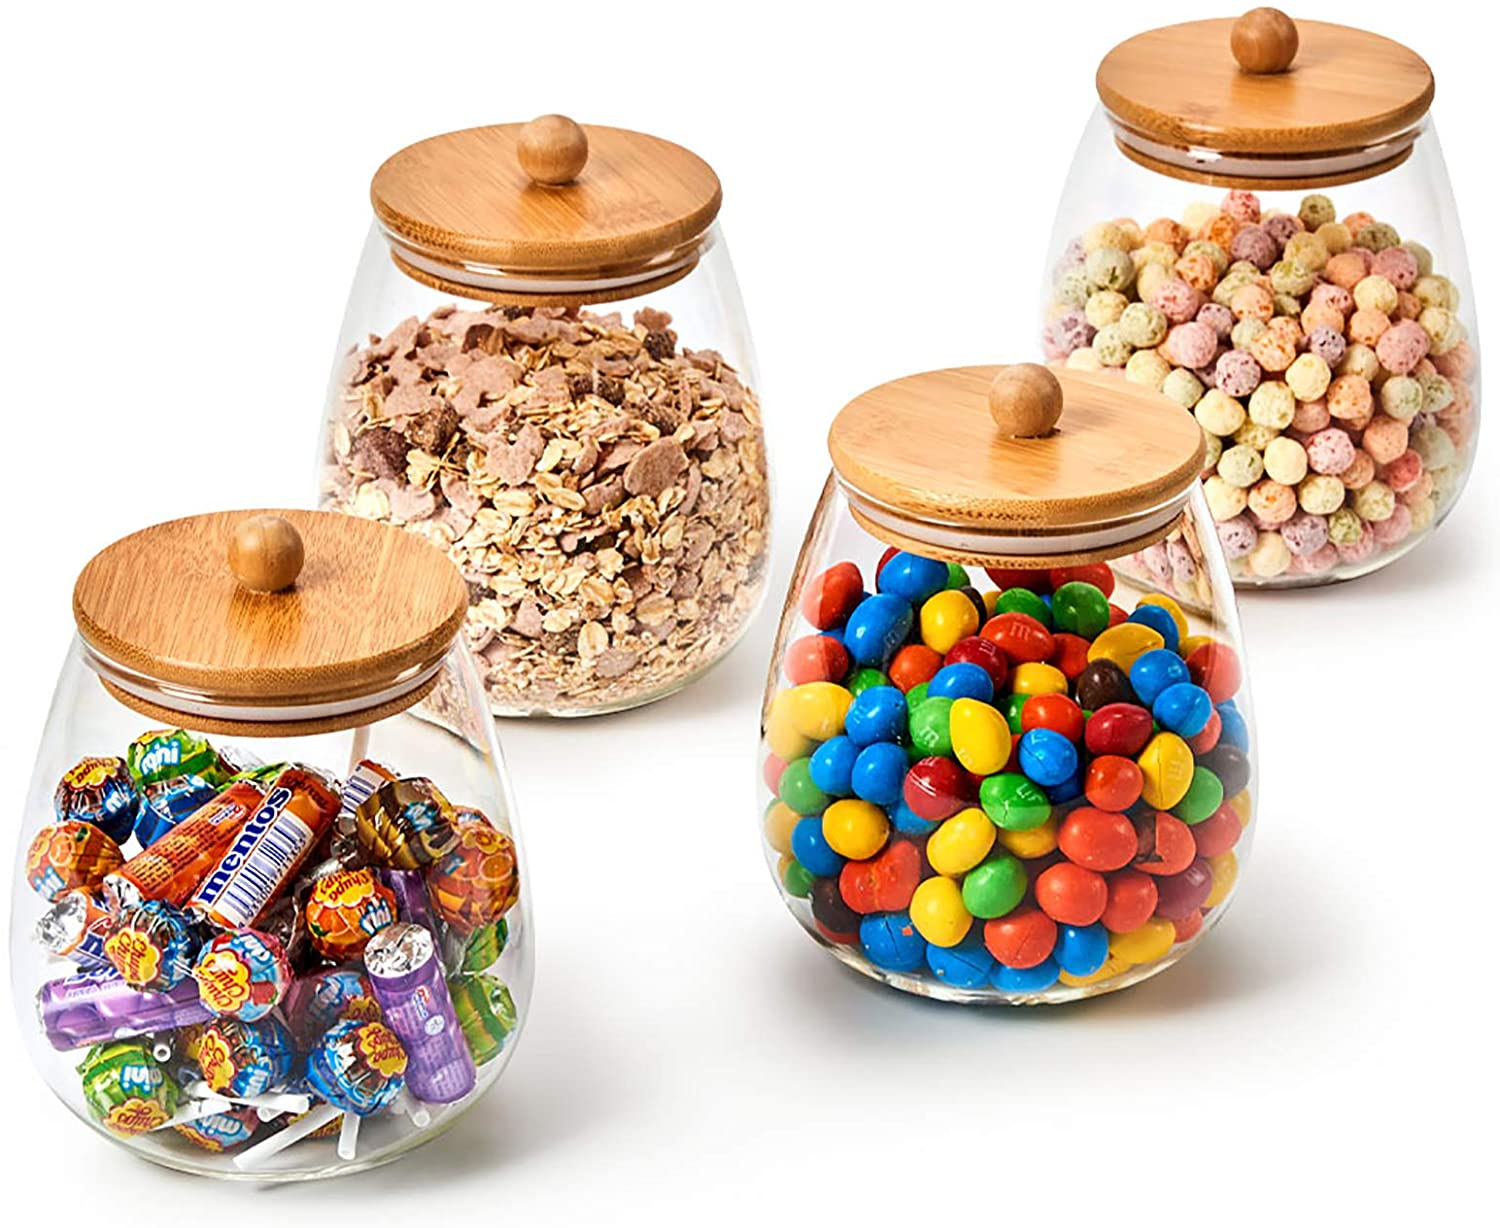 Ezoware 4 Piece Round Clear Glass Jars Air Tight Decorative Canister Kitchen Food Storage Container Set With Natural Bamboo Lids For Candy Cookie Rice Sugar Flour 1000ml 9stroke